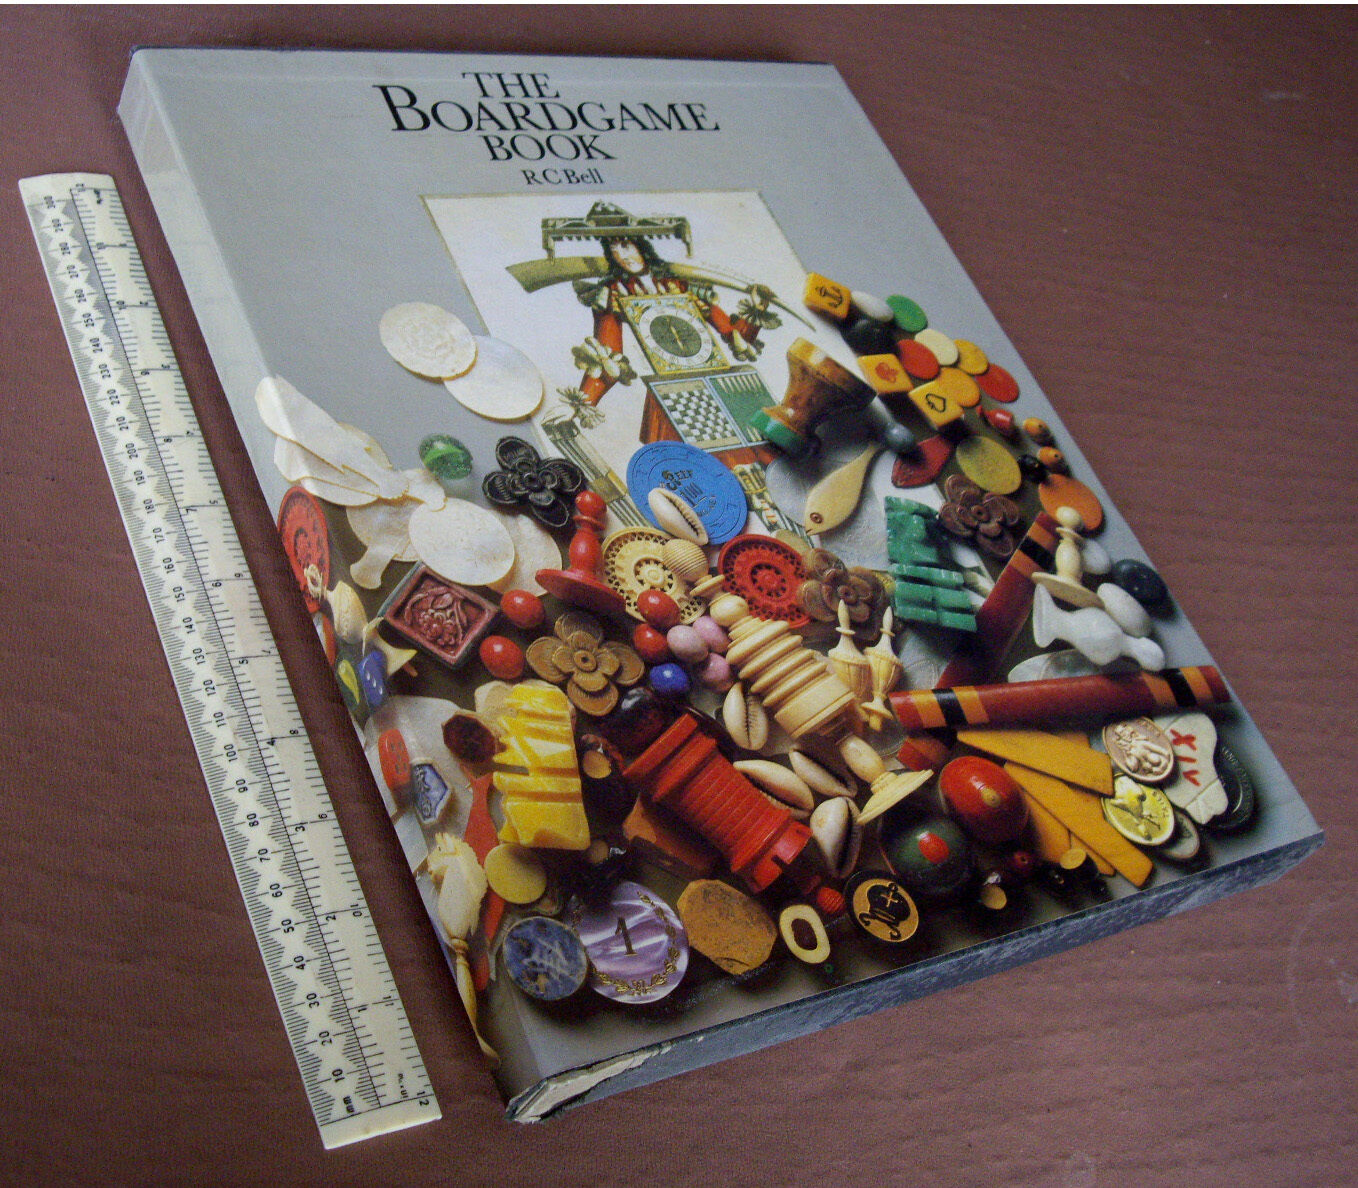 The Boardgame Book by R.C.Bell. 1979 1st Ed in Slip Case + Boards & Pieces